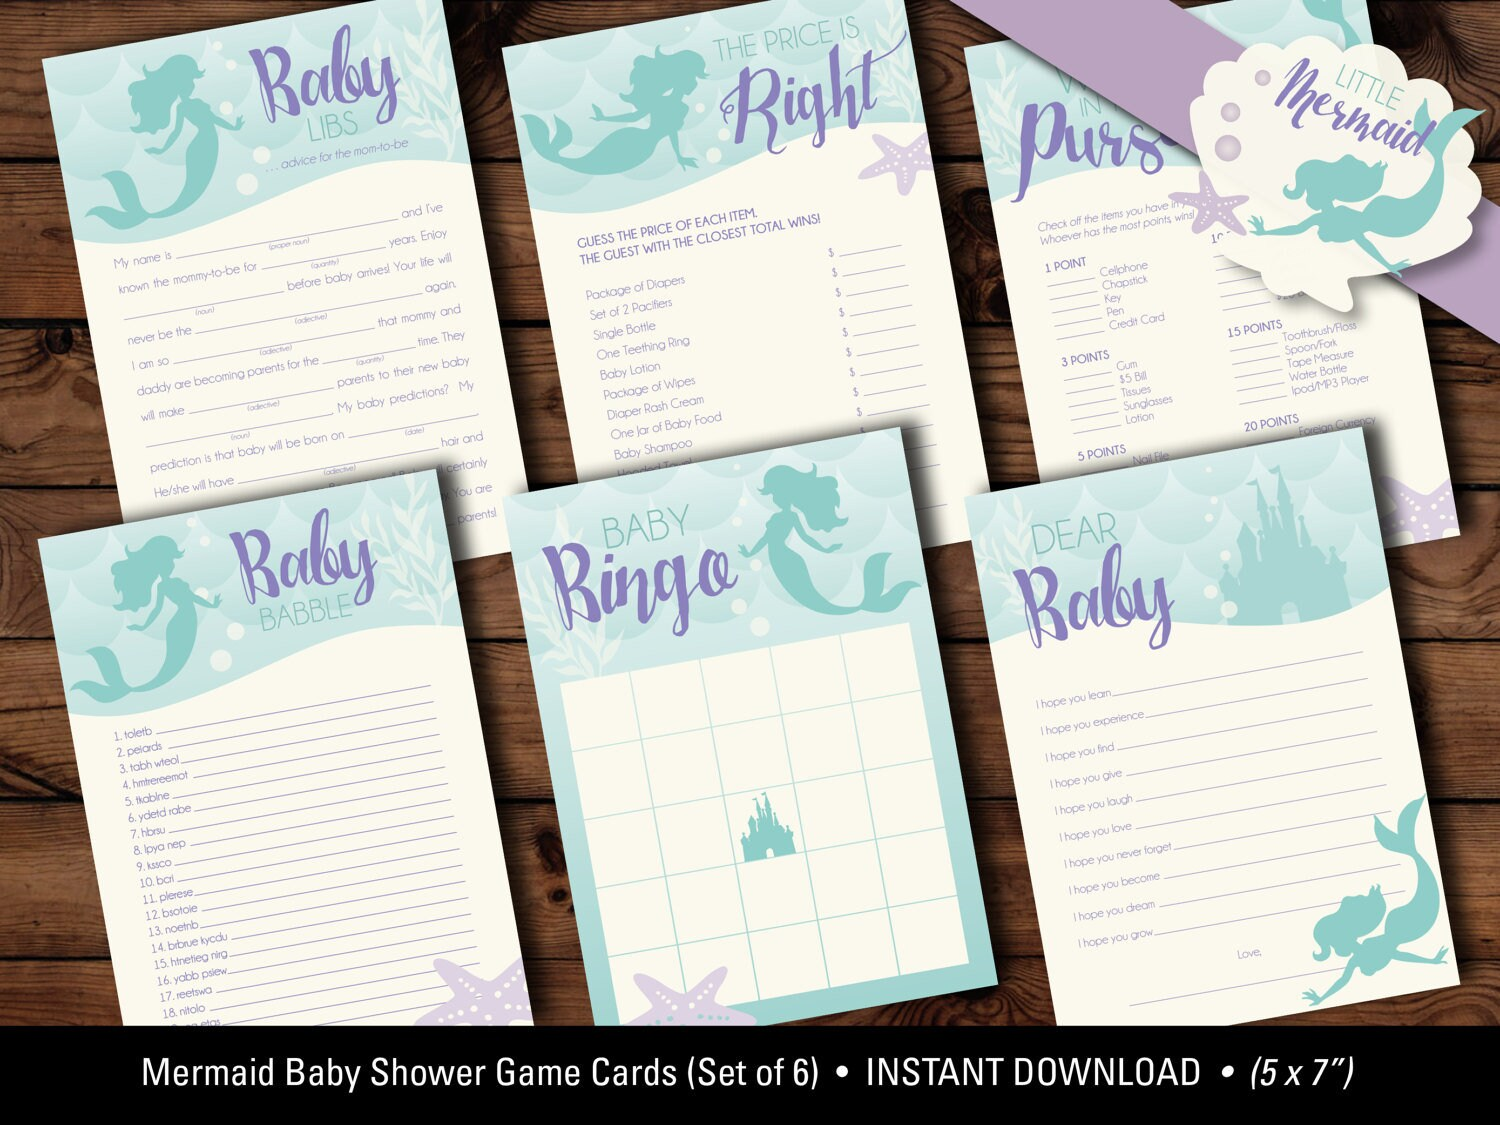 Mermaid Baby Shower Game Cards, Mermaid Baby Shower Games, Mermaid  Printables, Baby Bingo, Baby Babble, Dear Baby, INSTANT DOWNLOAD, DIGITAL